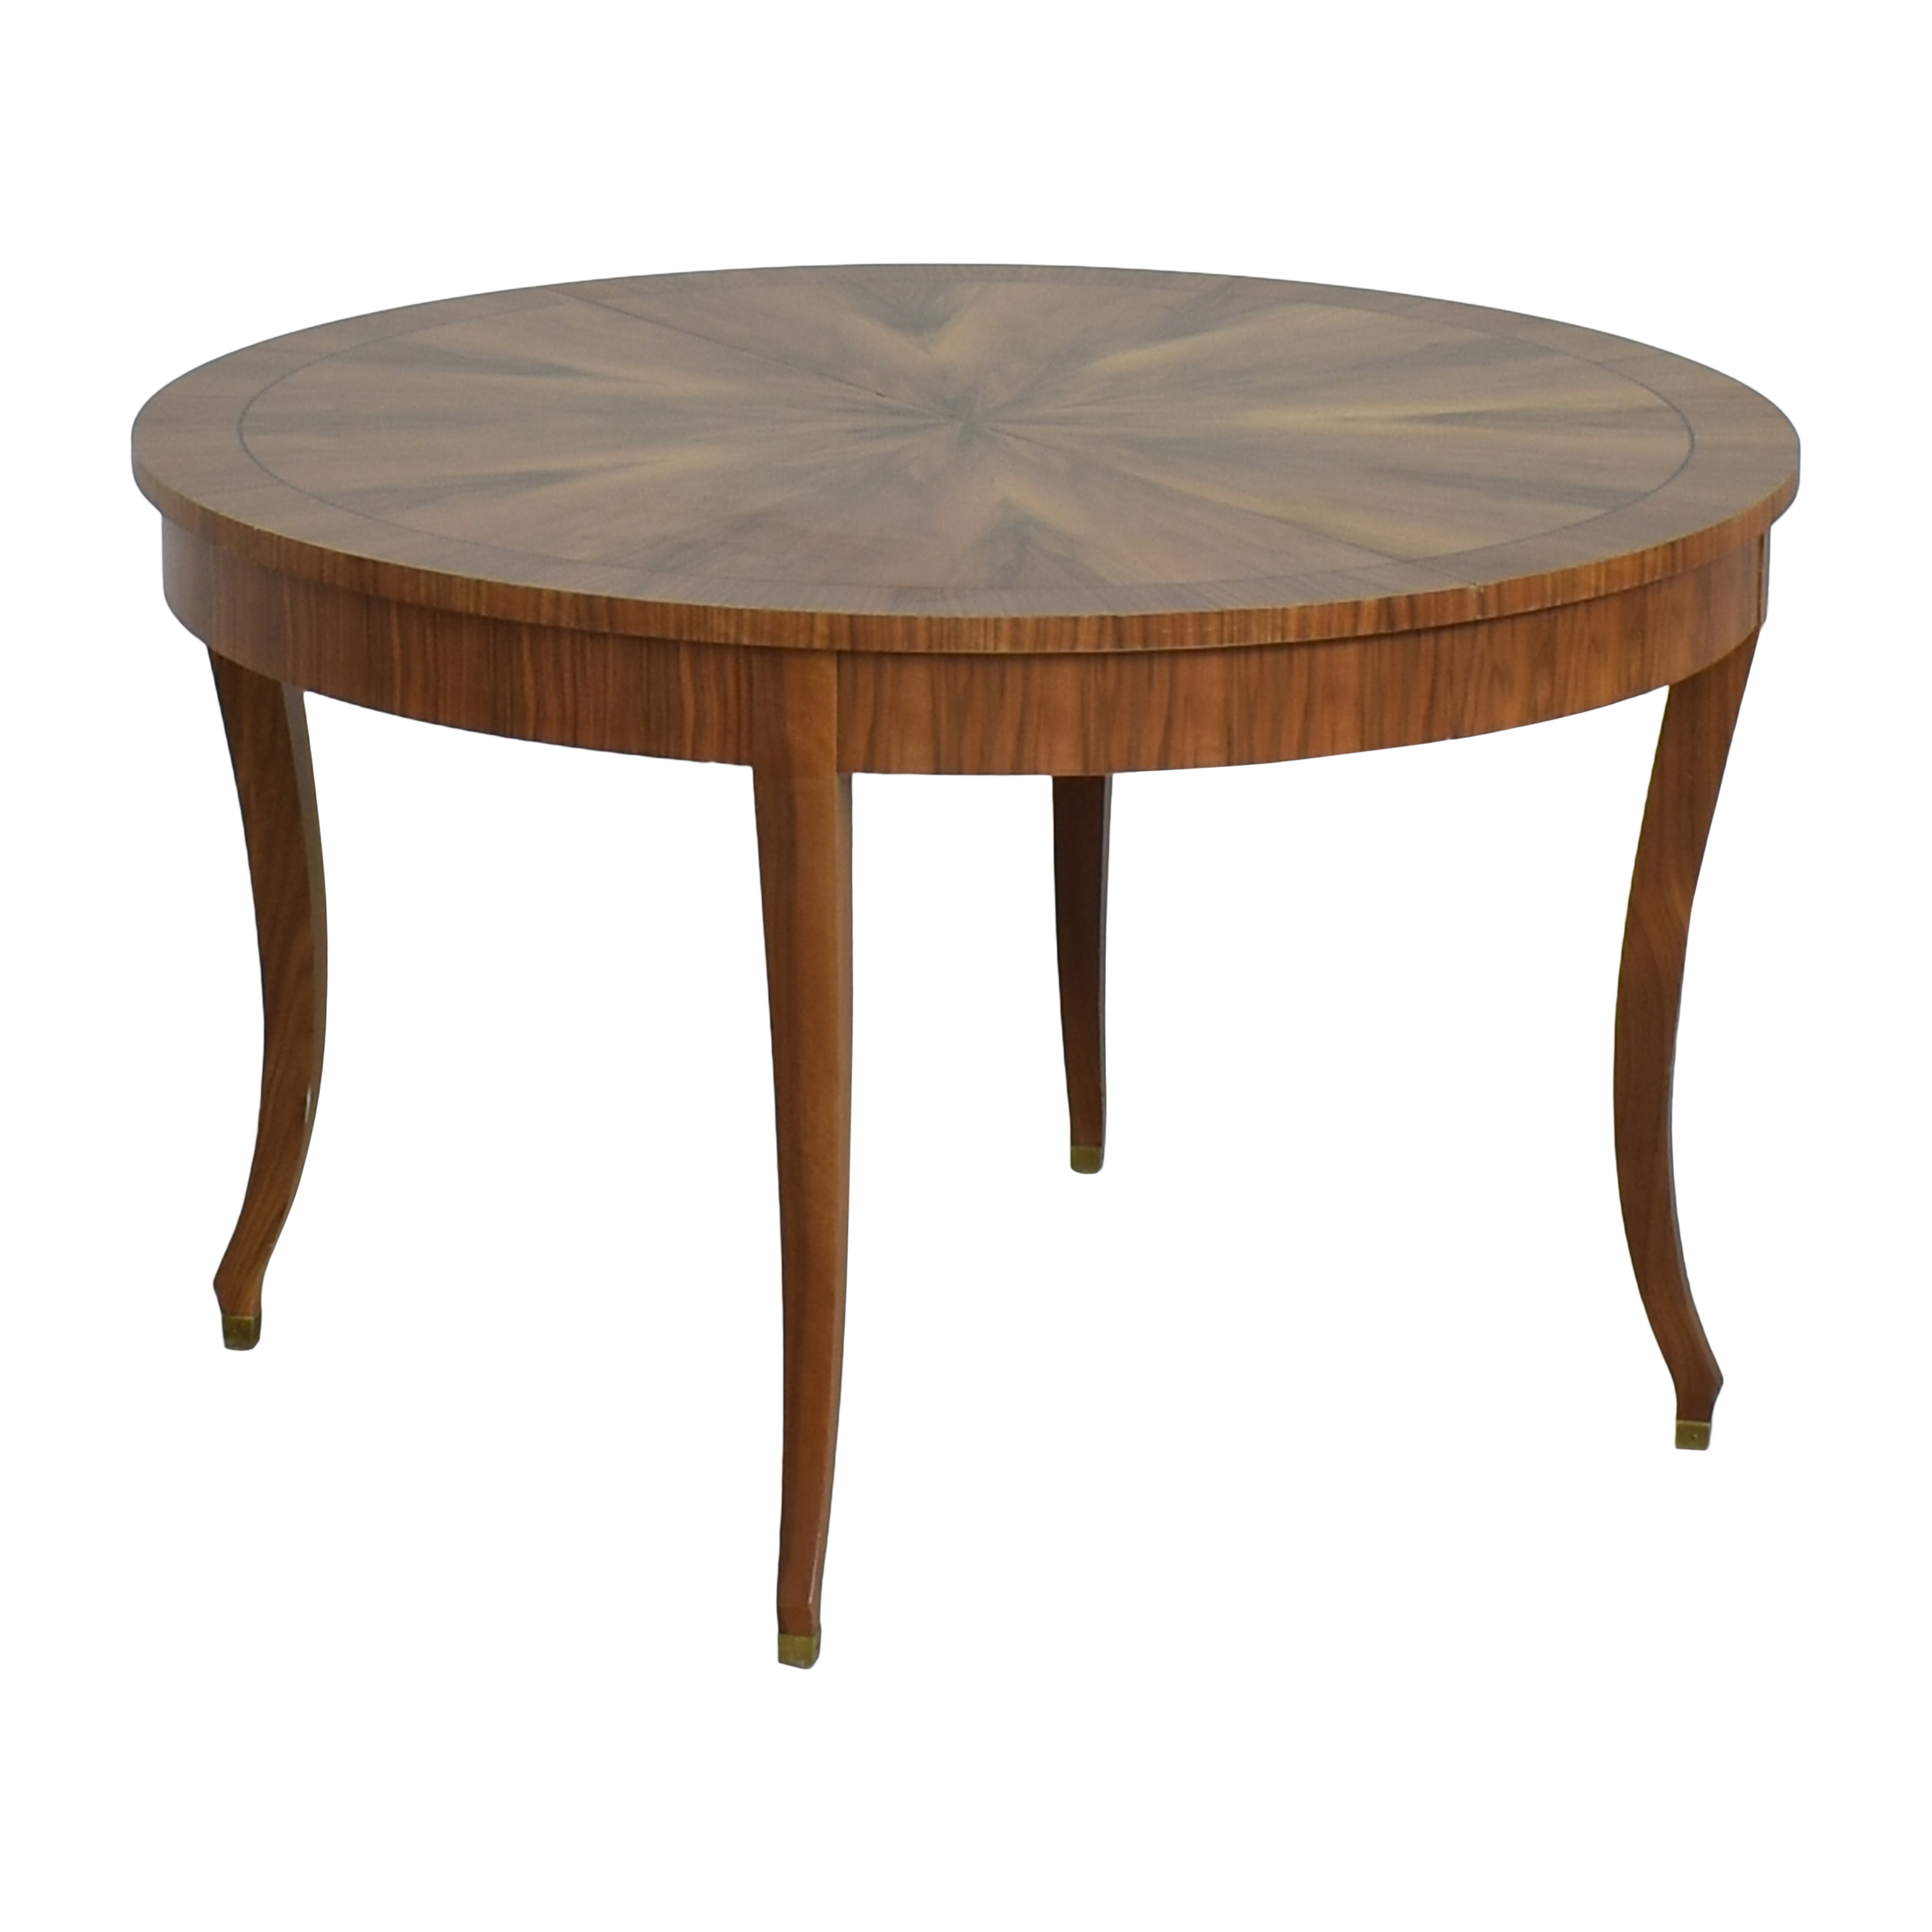 Lane Furniture Lane Furniture Extendable Round Dining Table second hand